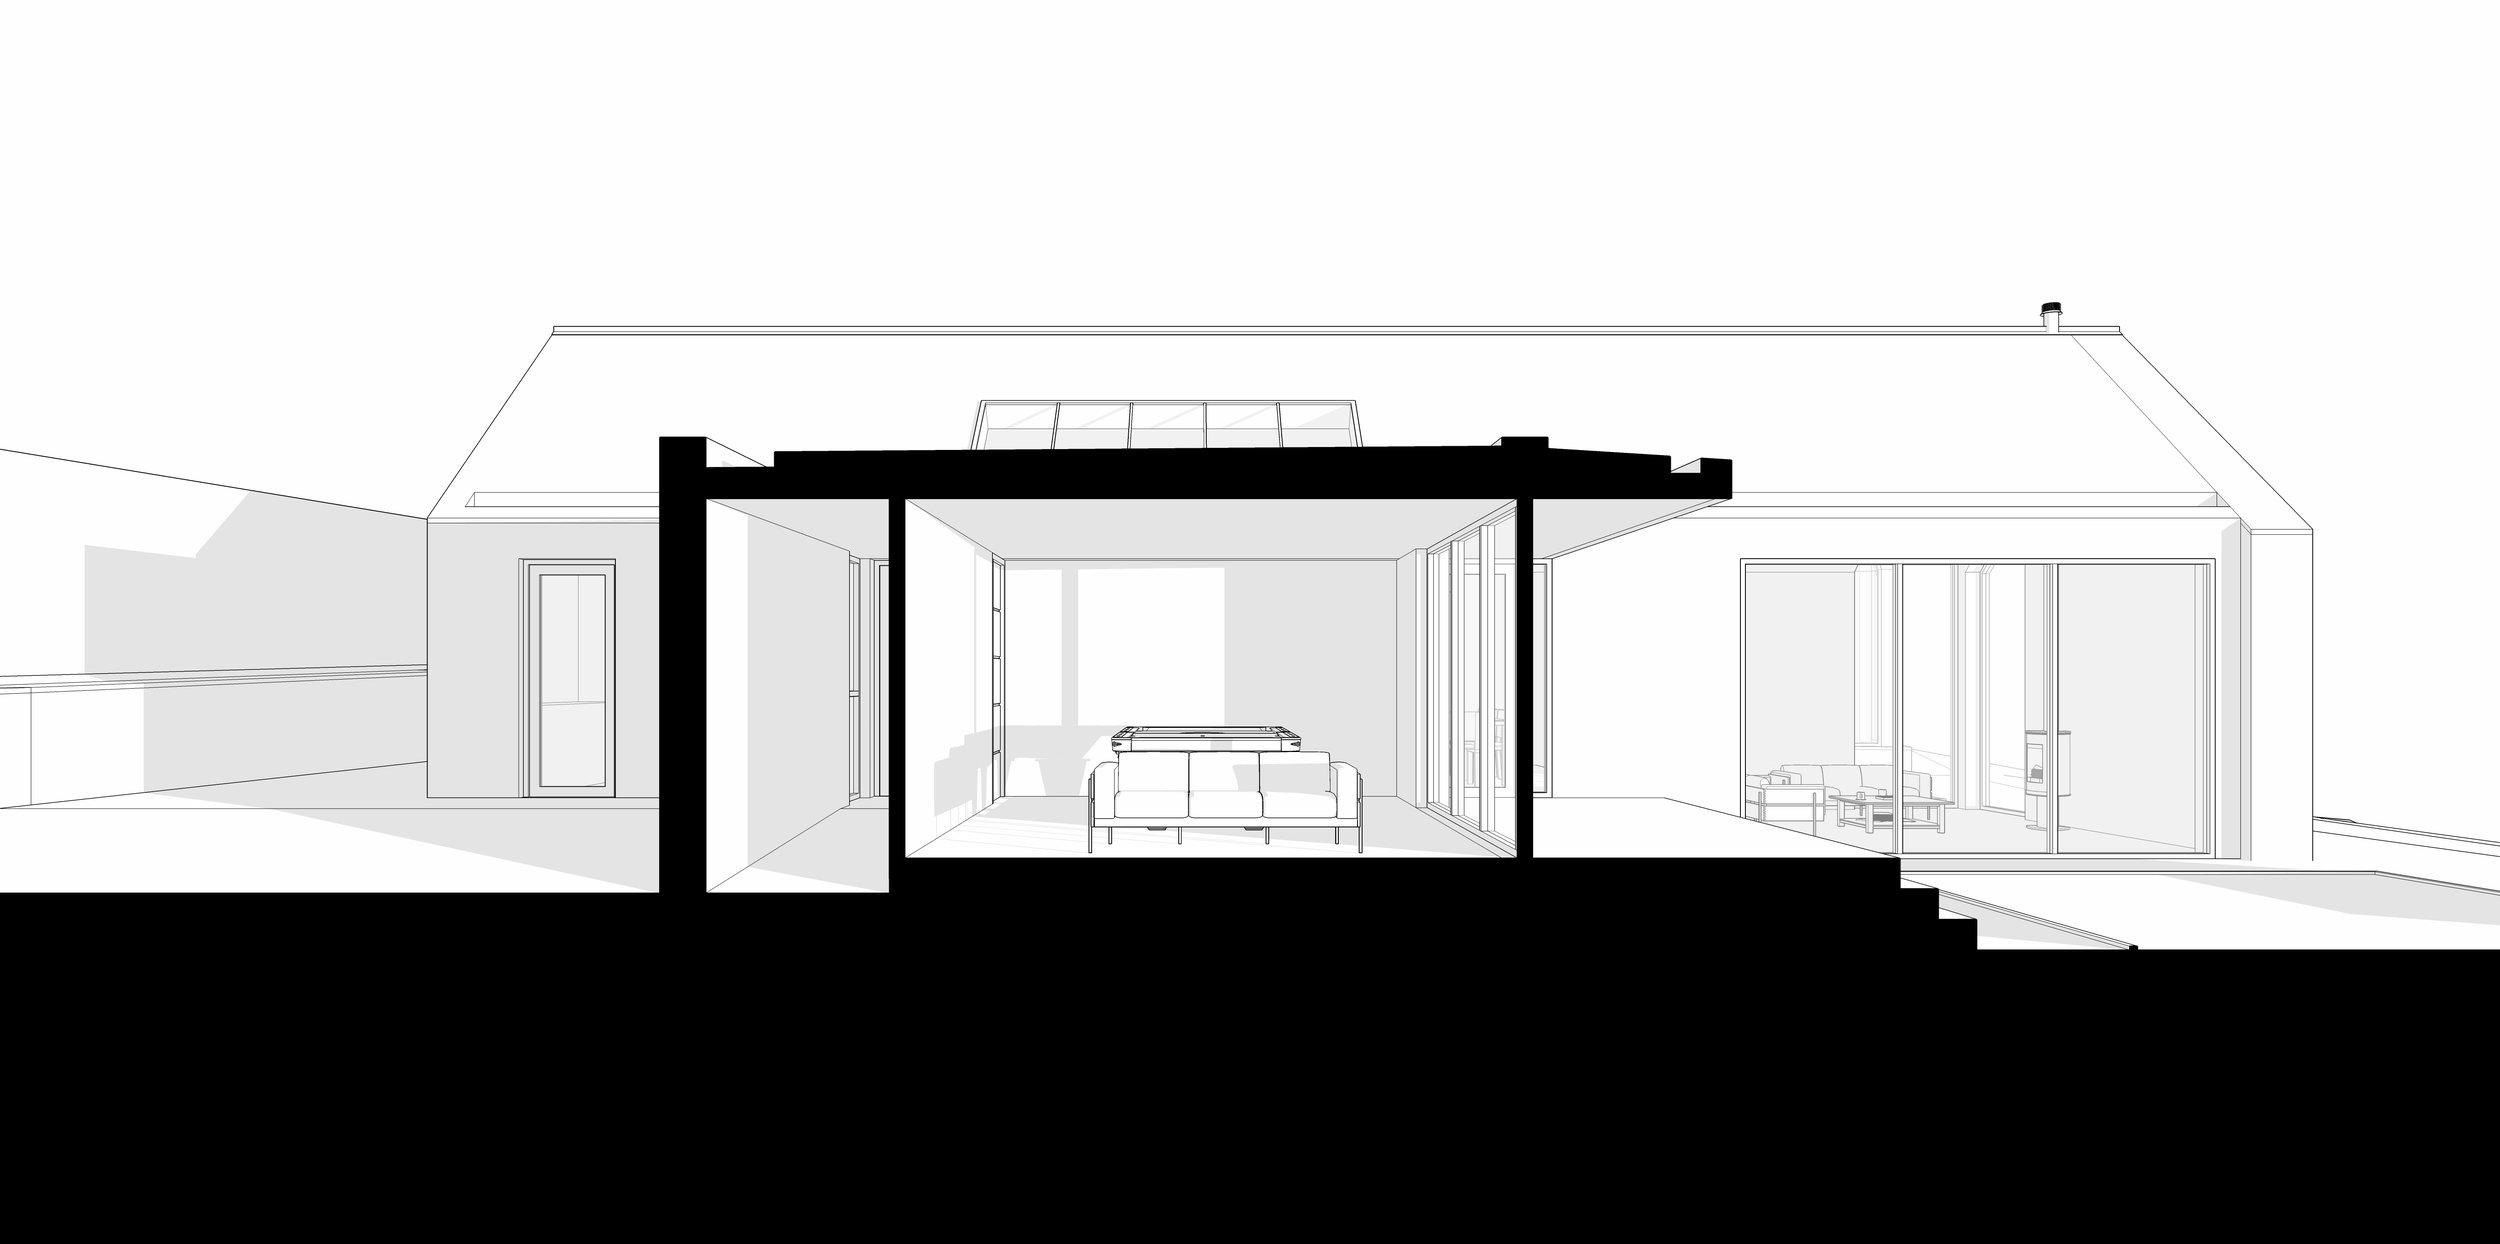 Perspective cross section showing living area relationship to terrace and courtyard